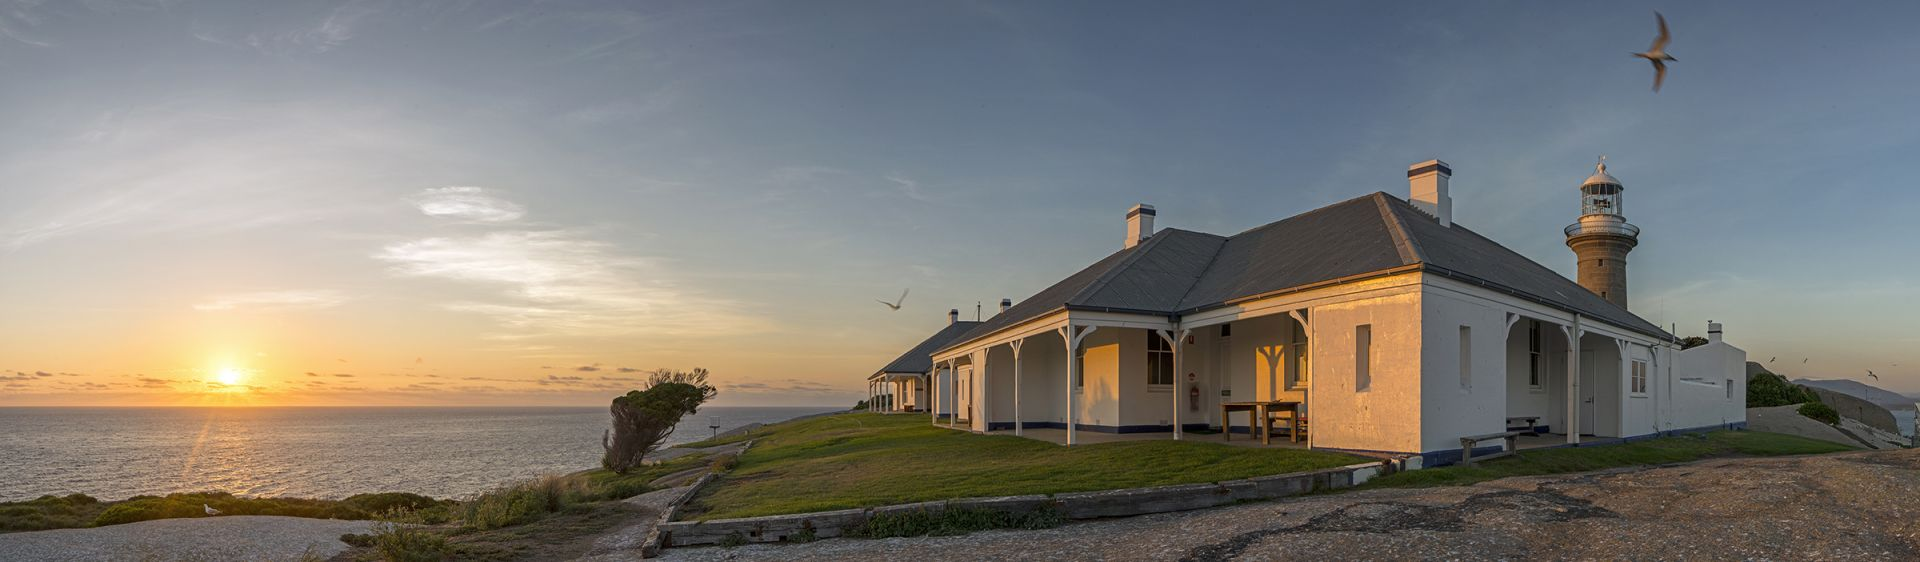 Coastal Accommodation - Cottage on Montague Island